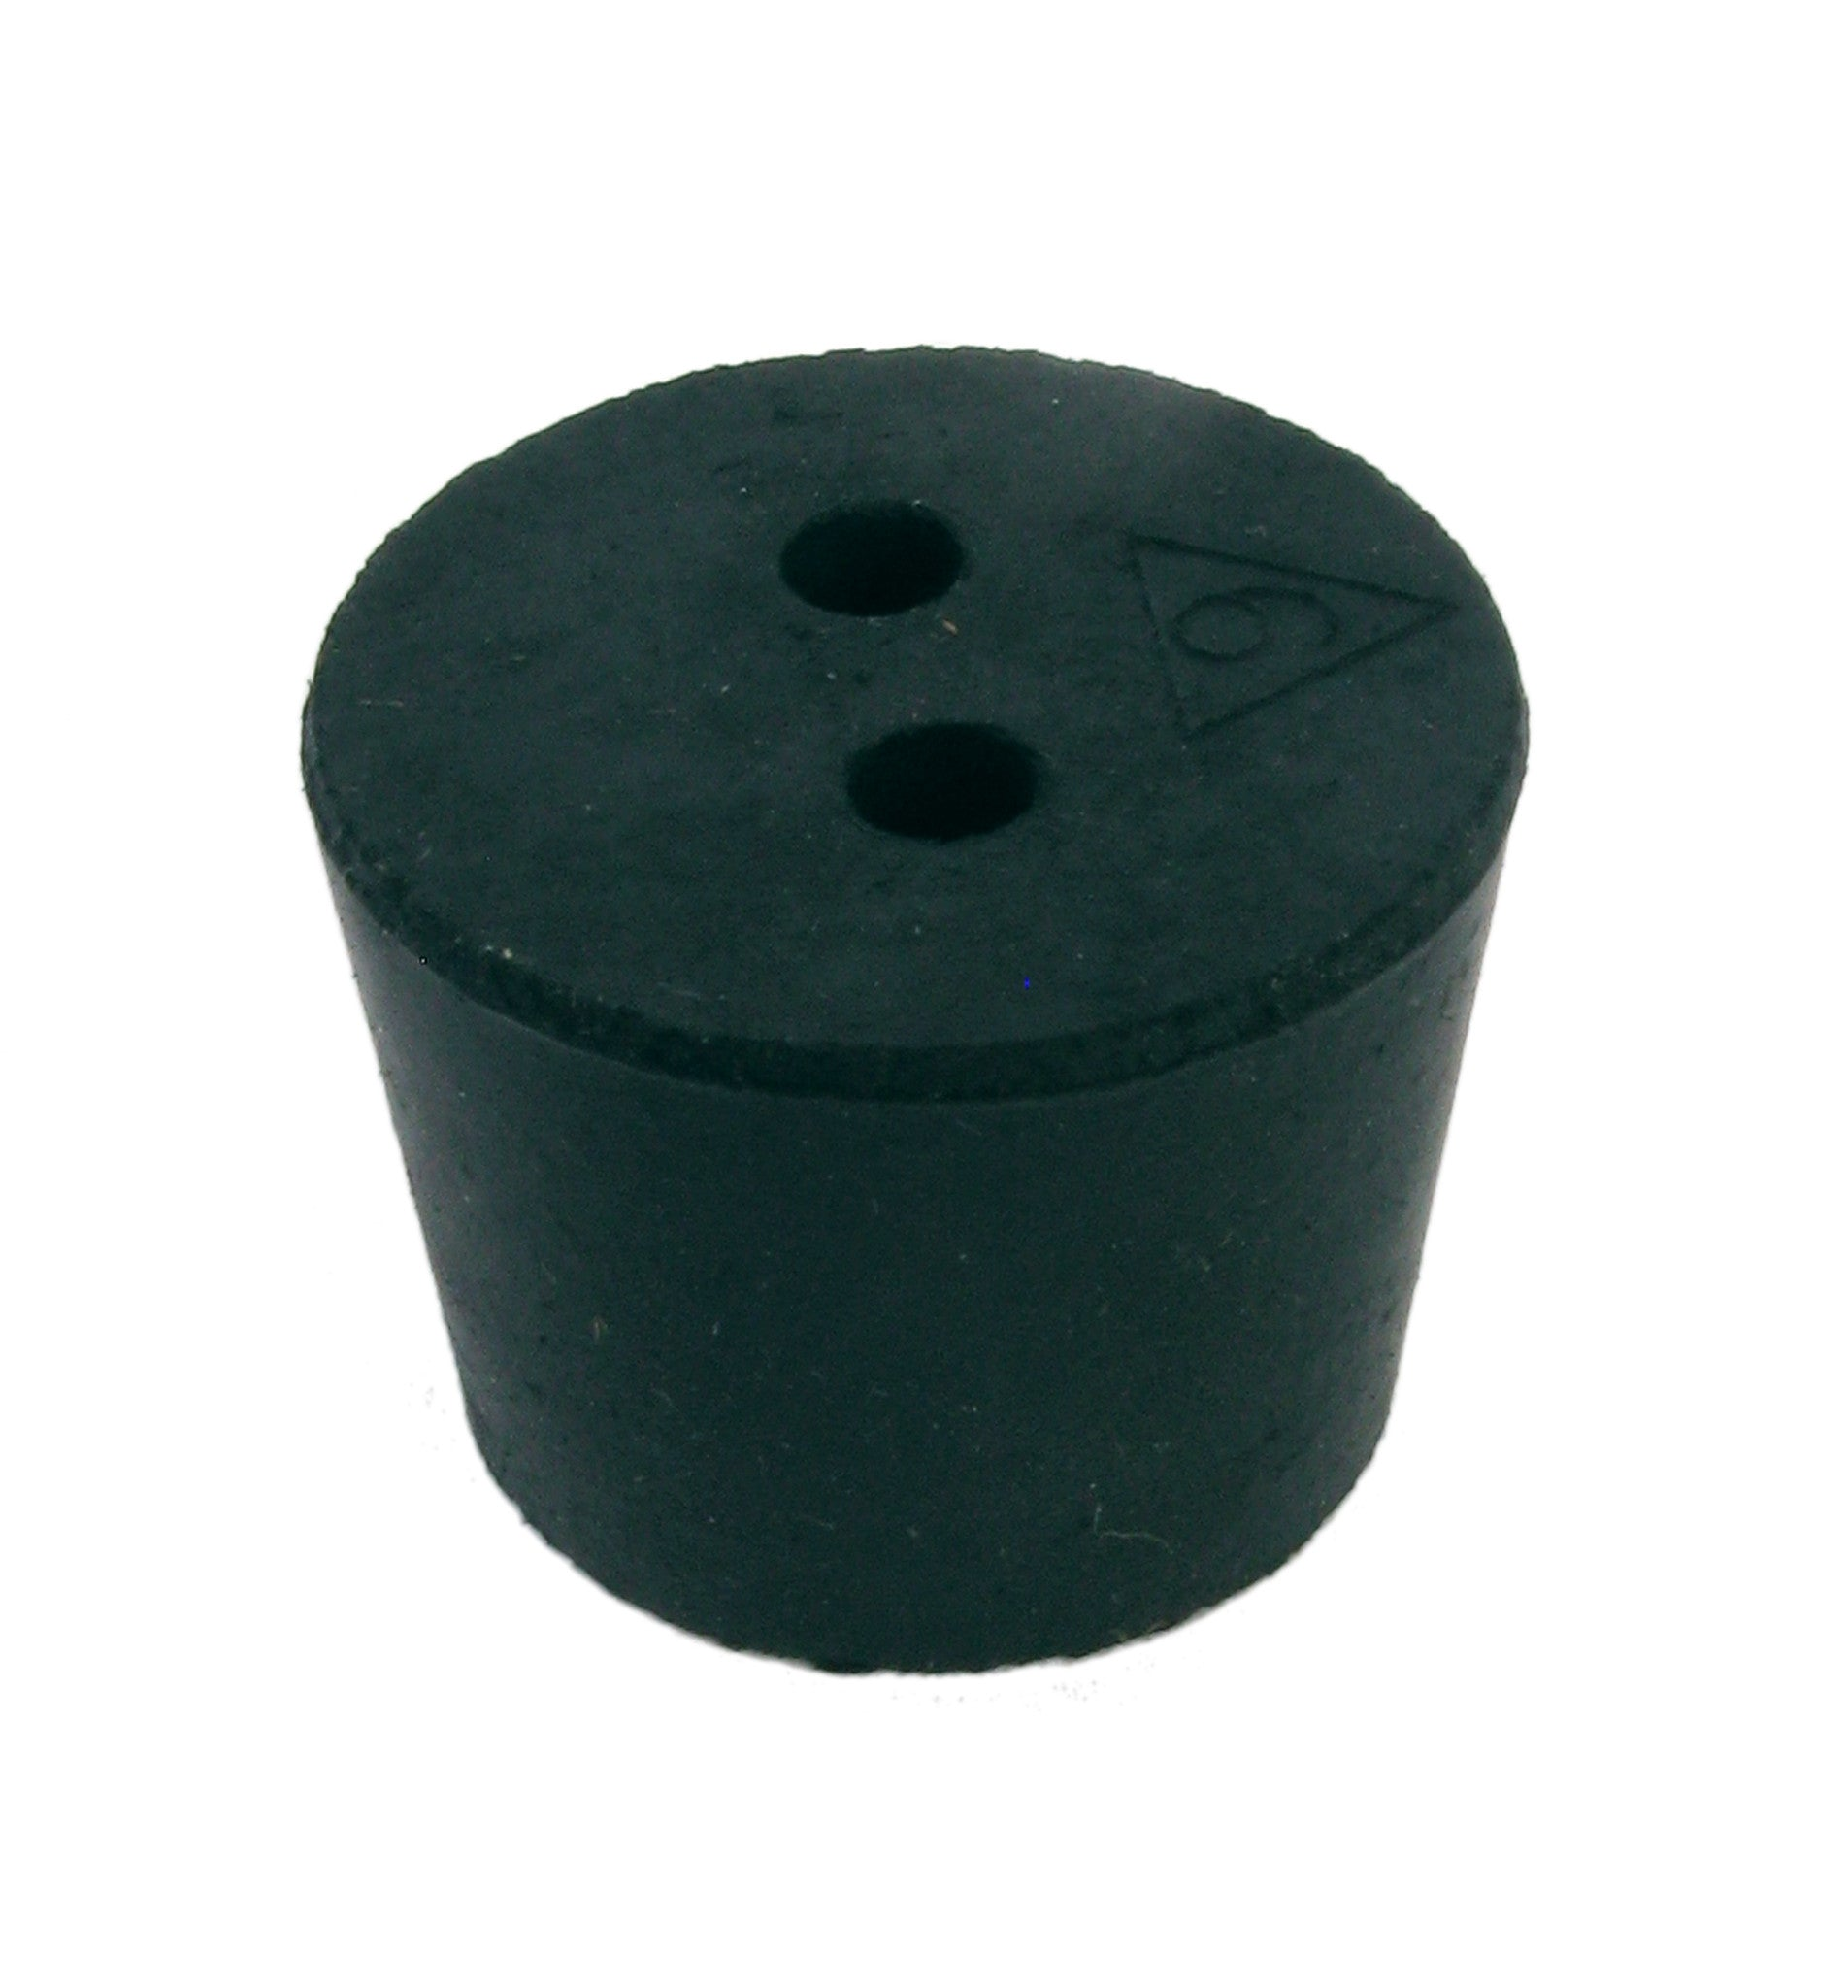 #6 Rubber Stopper with Hole